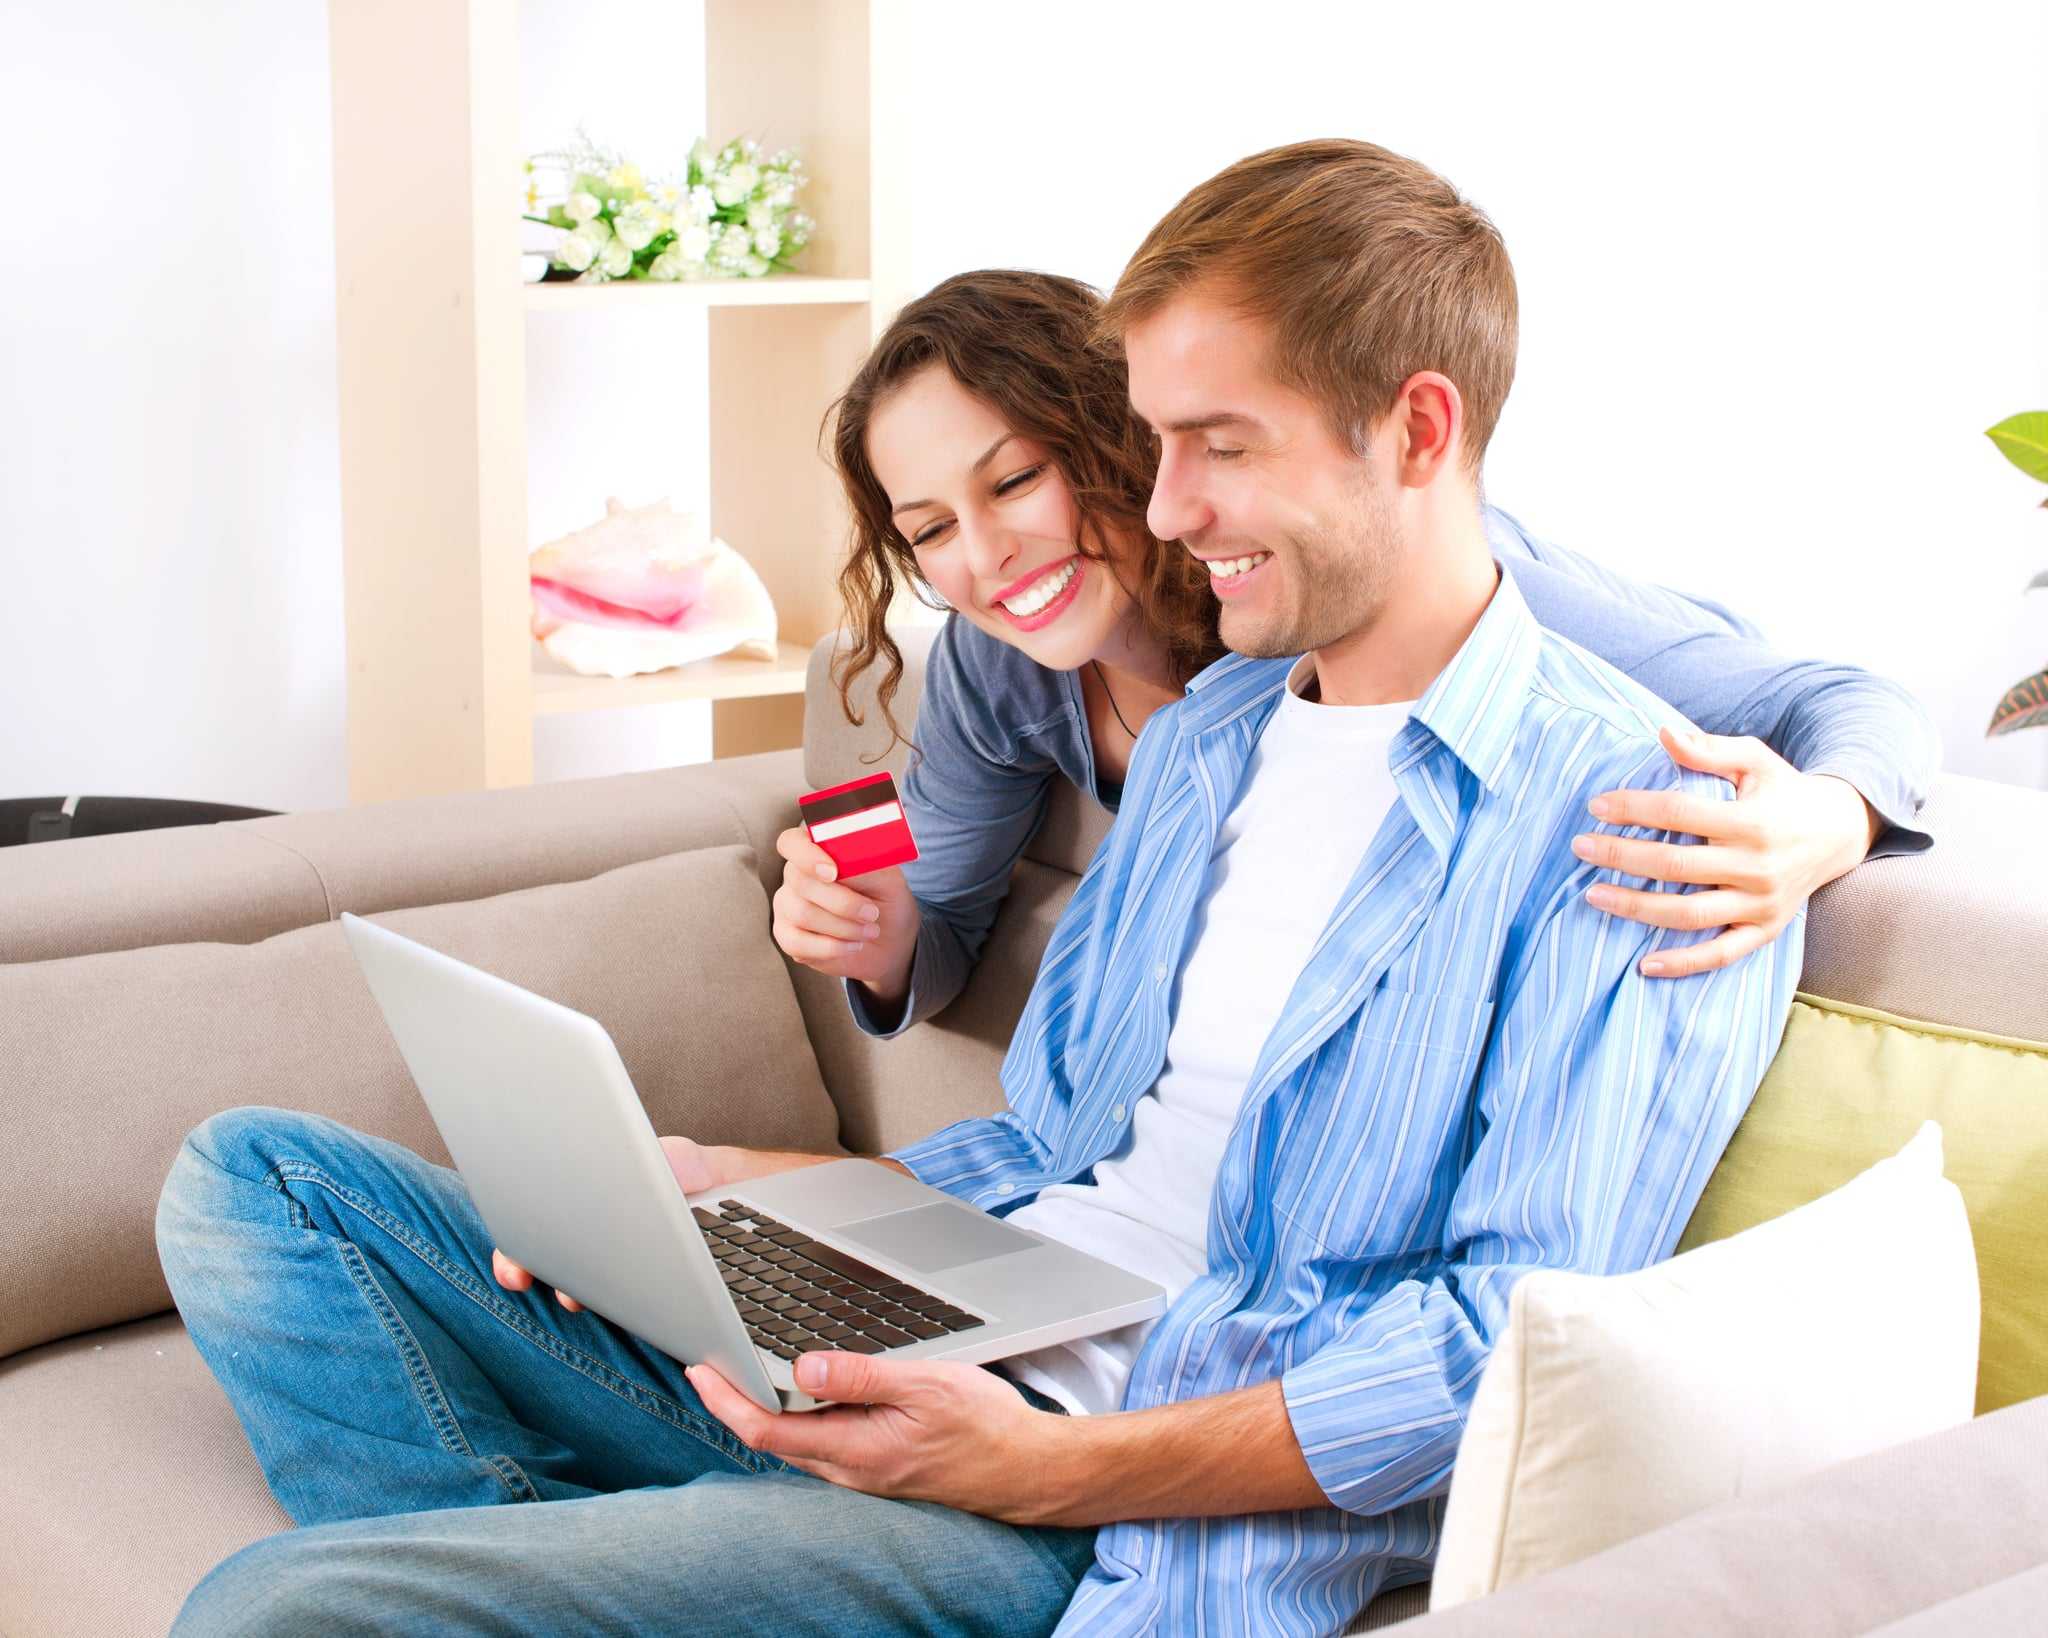 PopsugarLivingRelationshipsHow to Divide Expenses as a Couple4 Ways to Divide and Conquer Expenses as a CoupleFebruary 11, 2014 by Laura Marie Meyers46 SharesChat with us on Facebook Messenger. Learn what